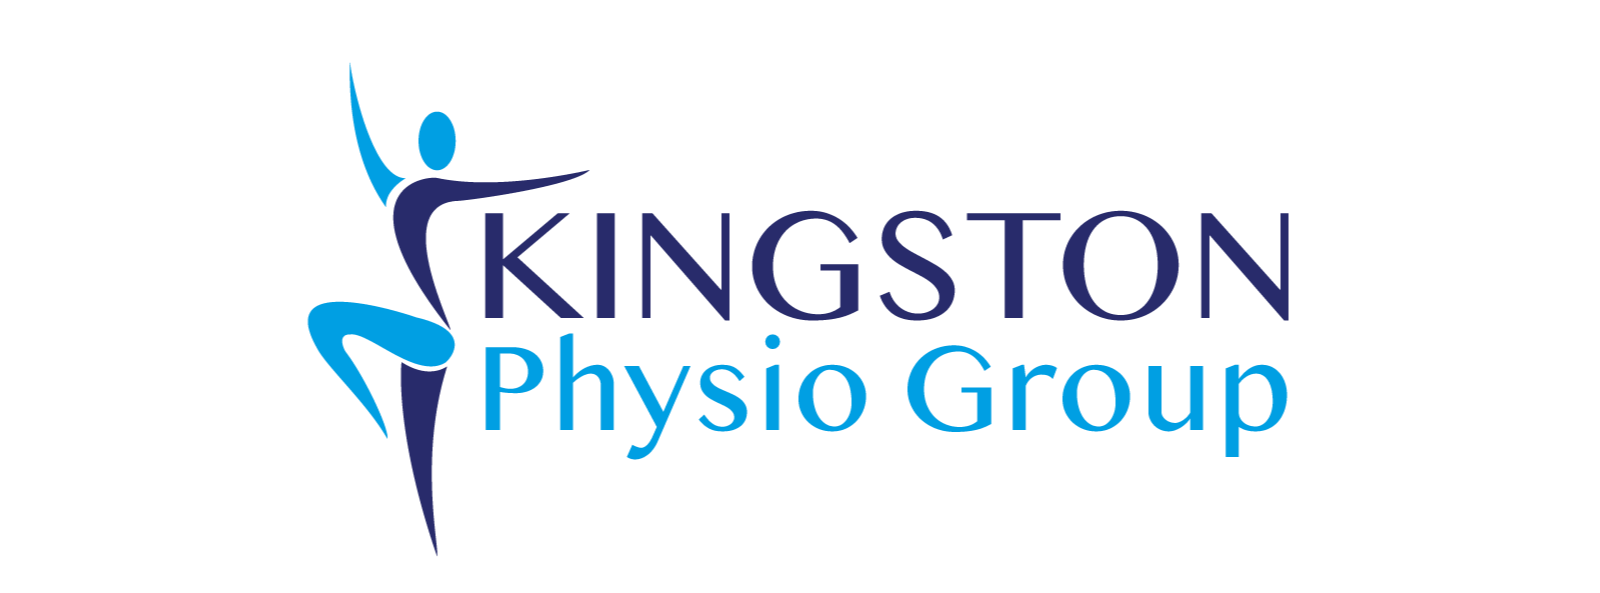 Kingston Physiotherapy